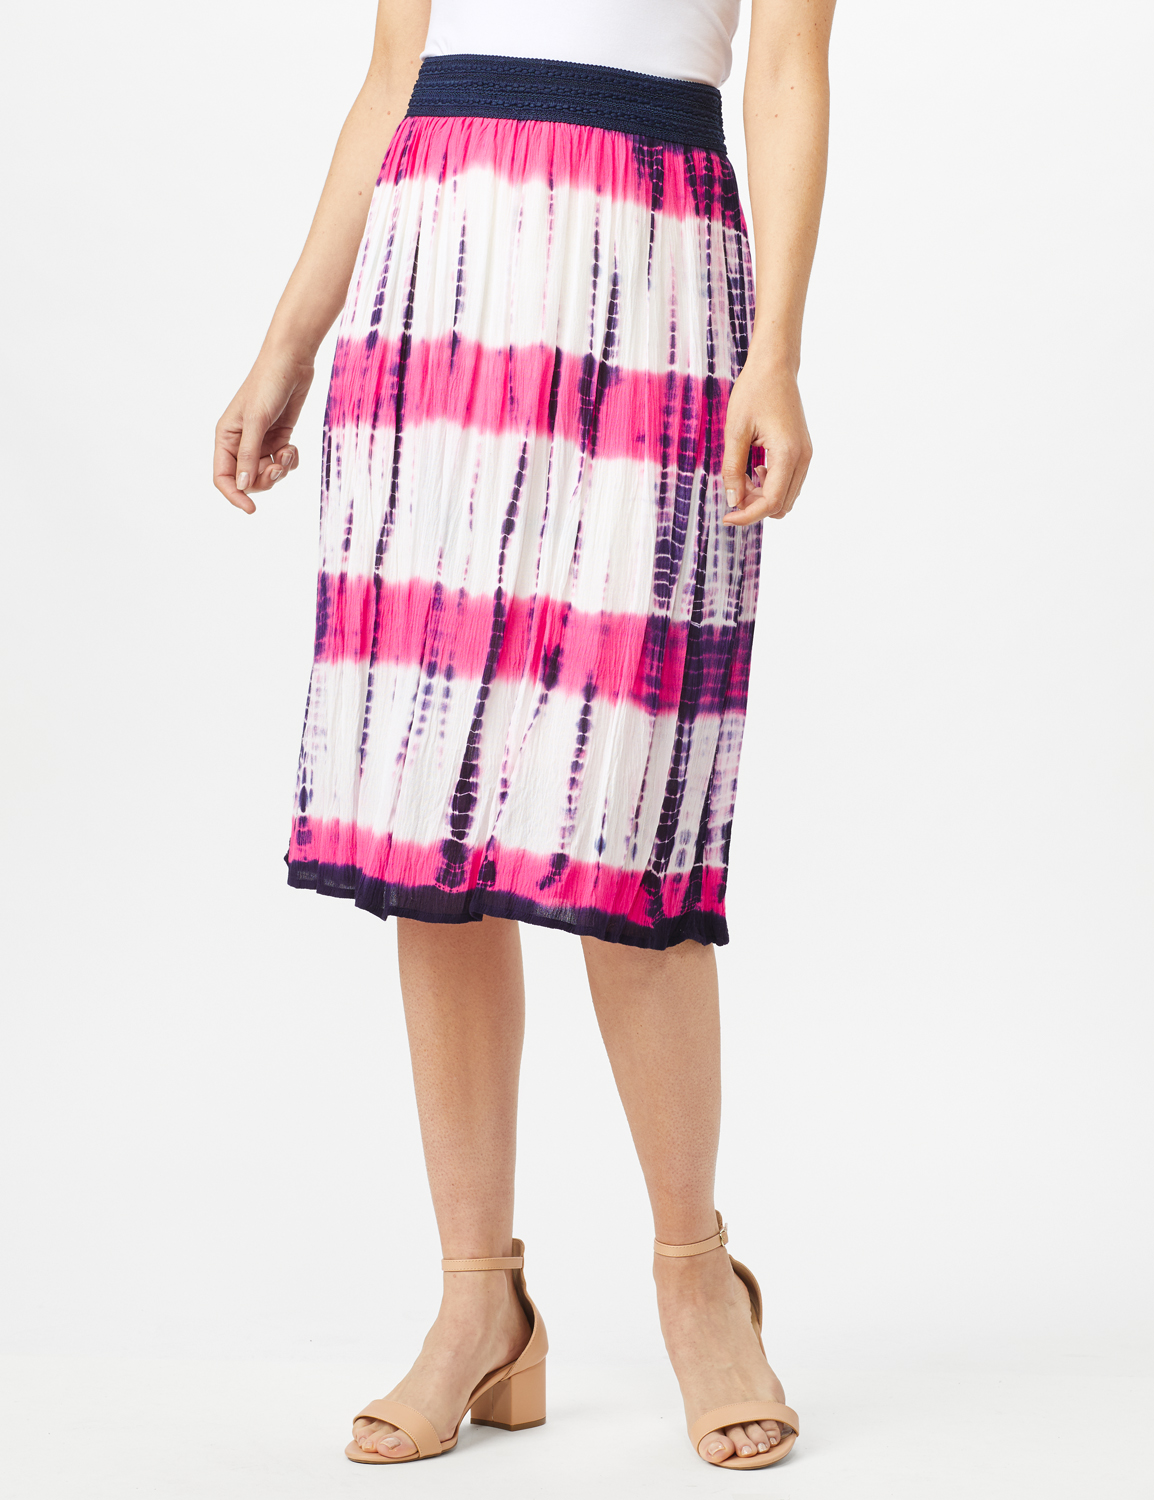 Rayon Gauze Skirt with Decorative Waistband -Fuschia/Navy - Front